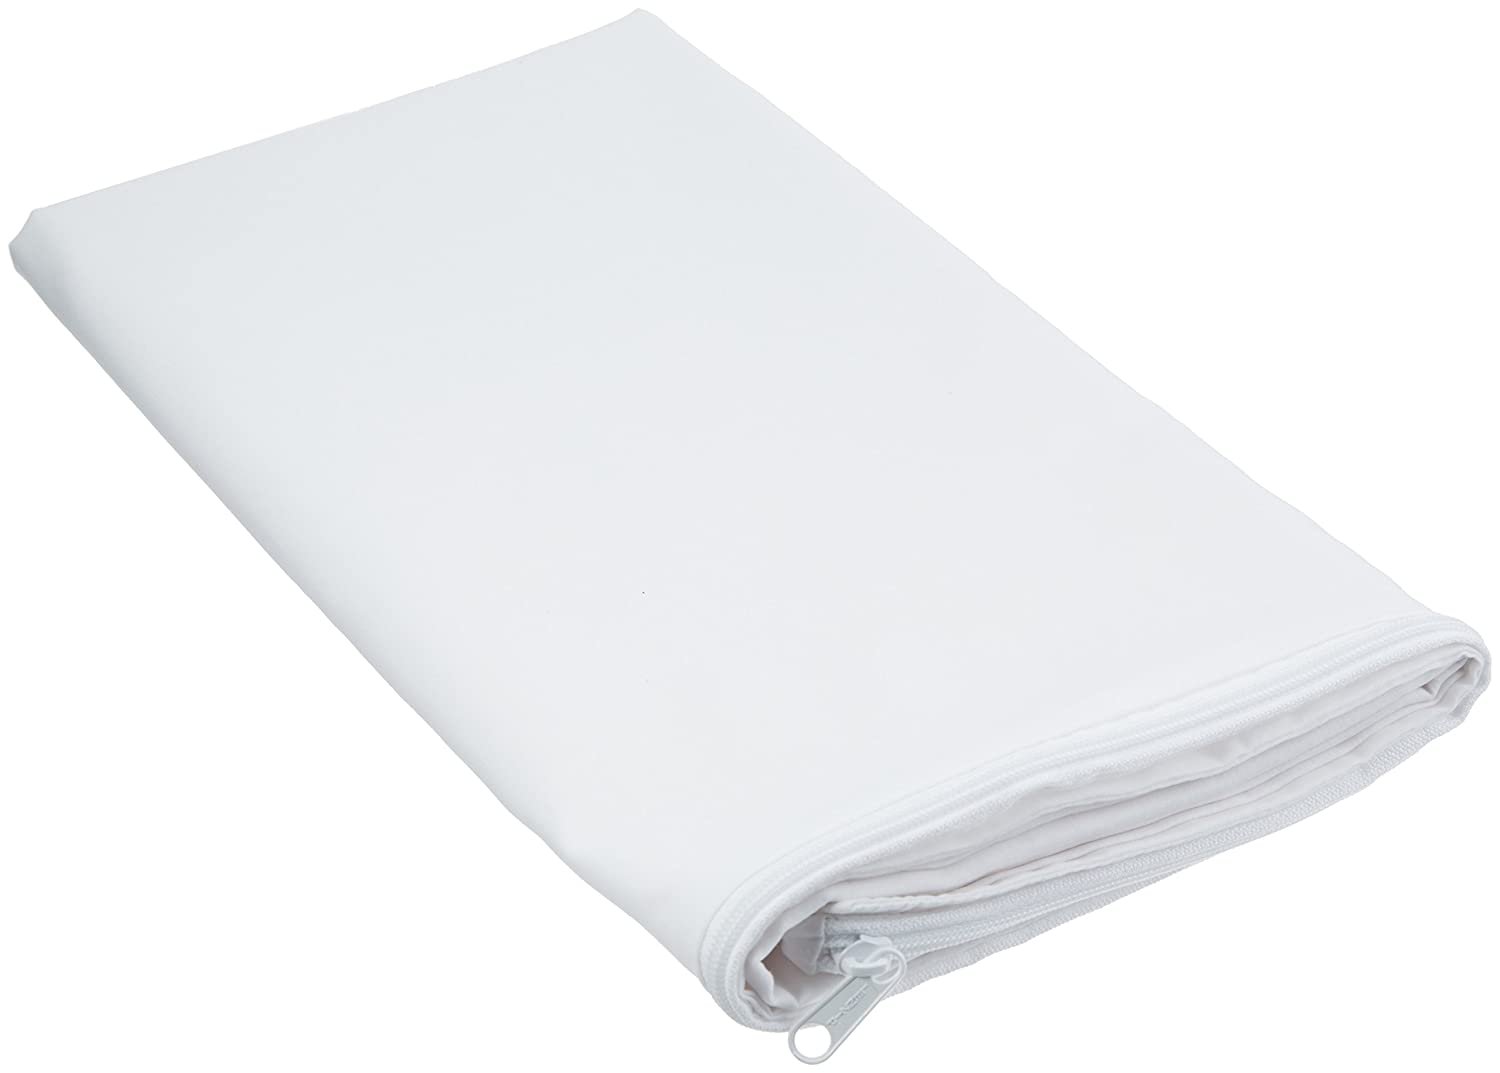 29410 Cover for Ergonomic Support Sleeping Pillow that Provides Pressure Relief /& Extreme Comfort for Entire Body Patterson Medical Holdings Inc Rolyan 10 Long Body Pillow Cover